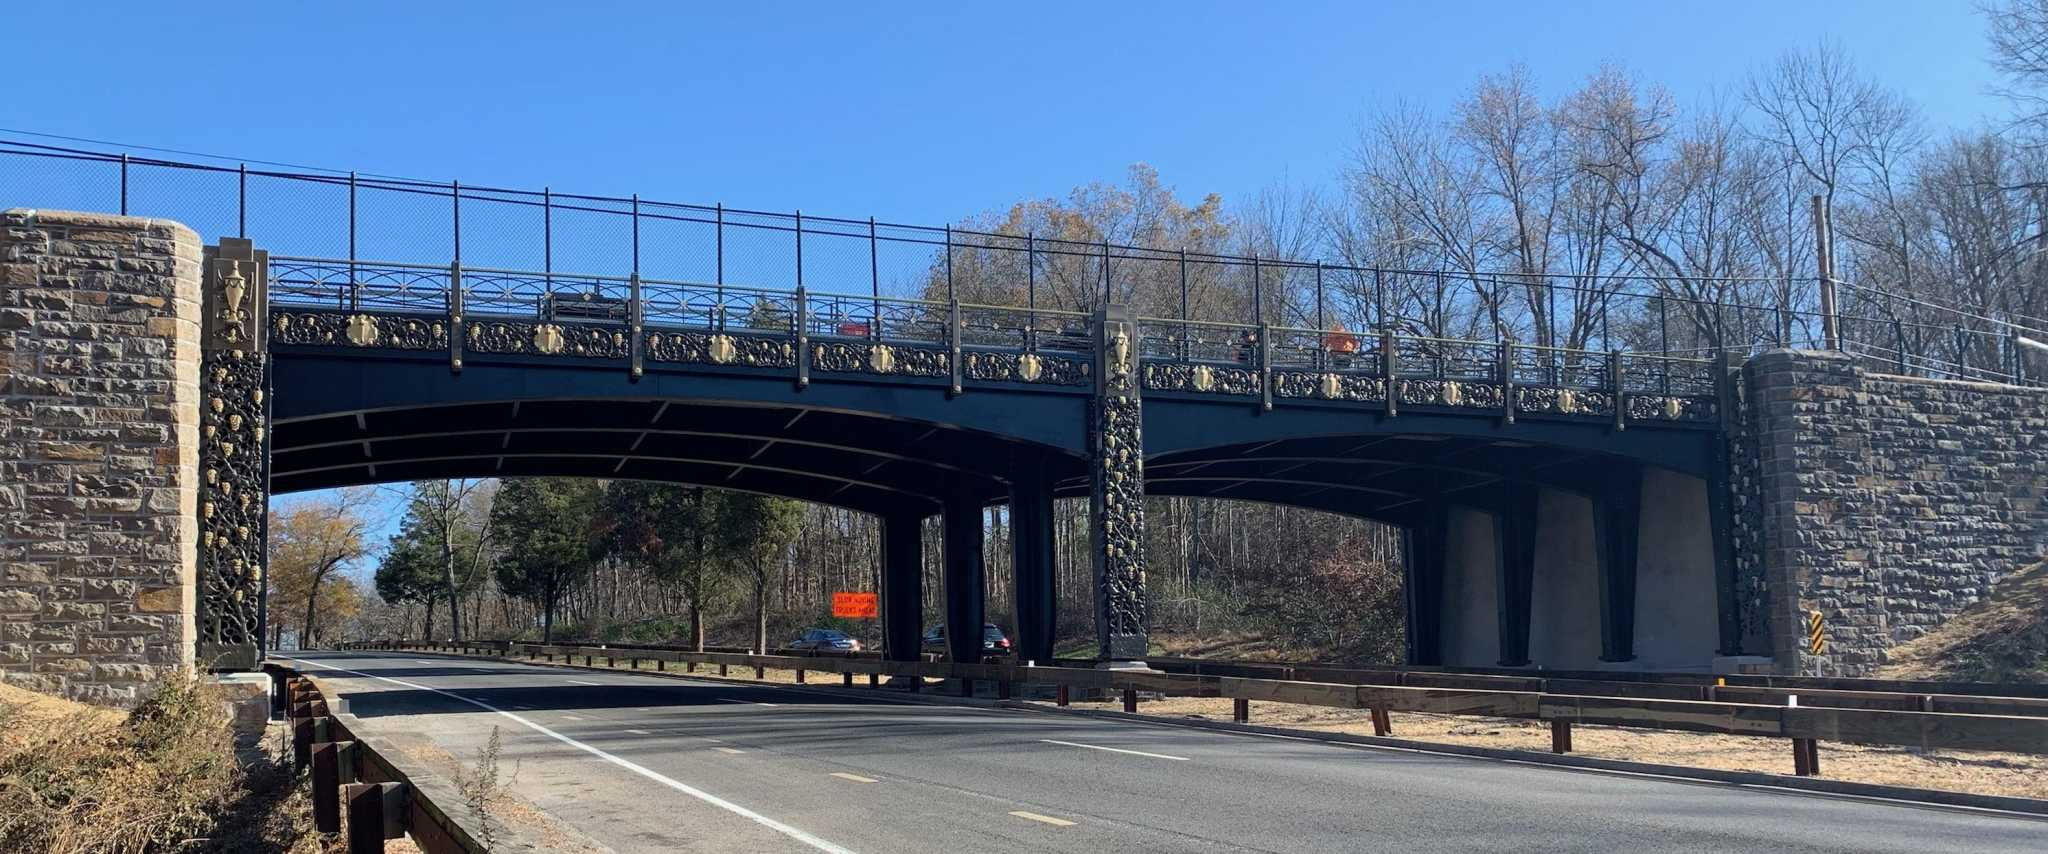 Before and after: Bridge over the Merritt to reopen in Greenwich - Greenwich Time